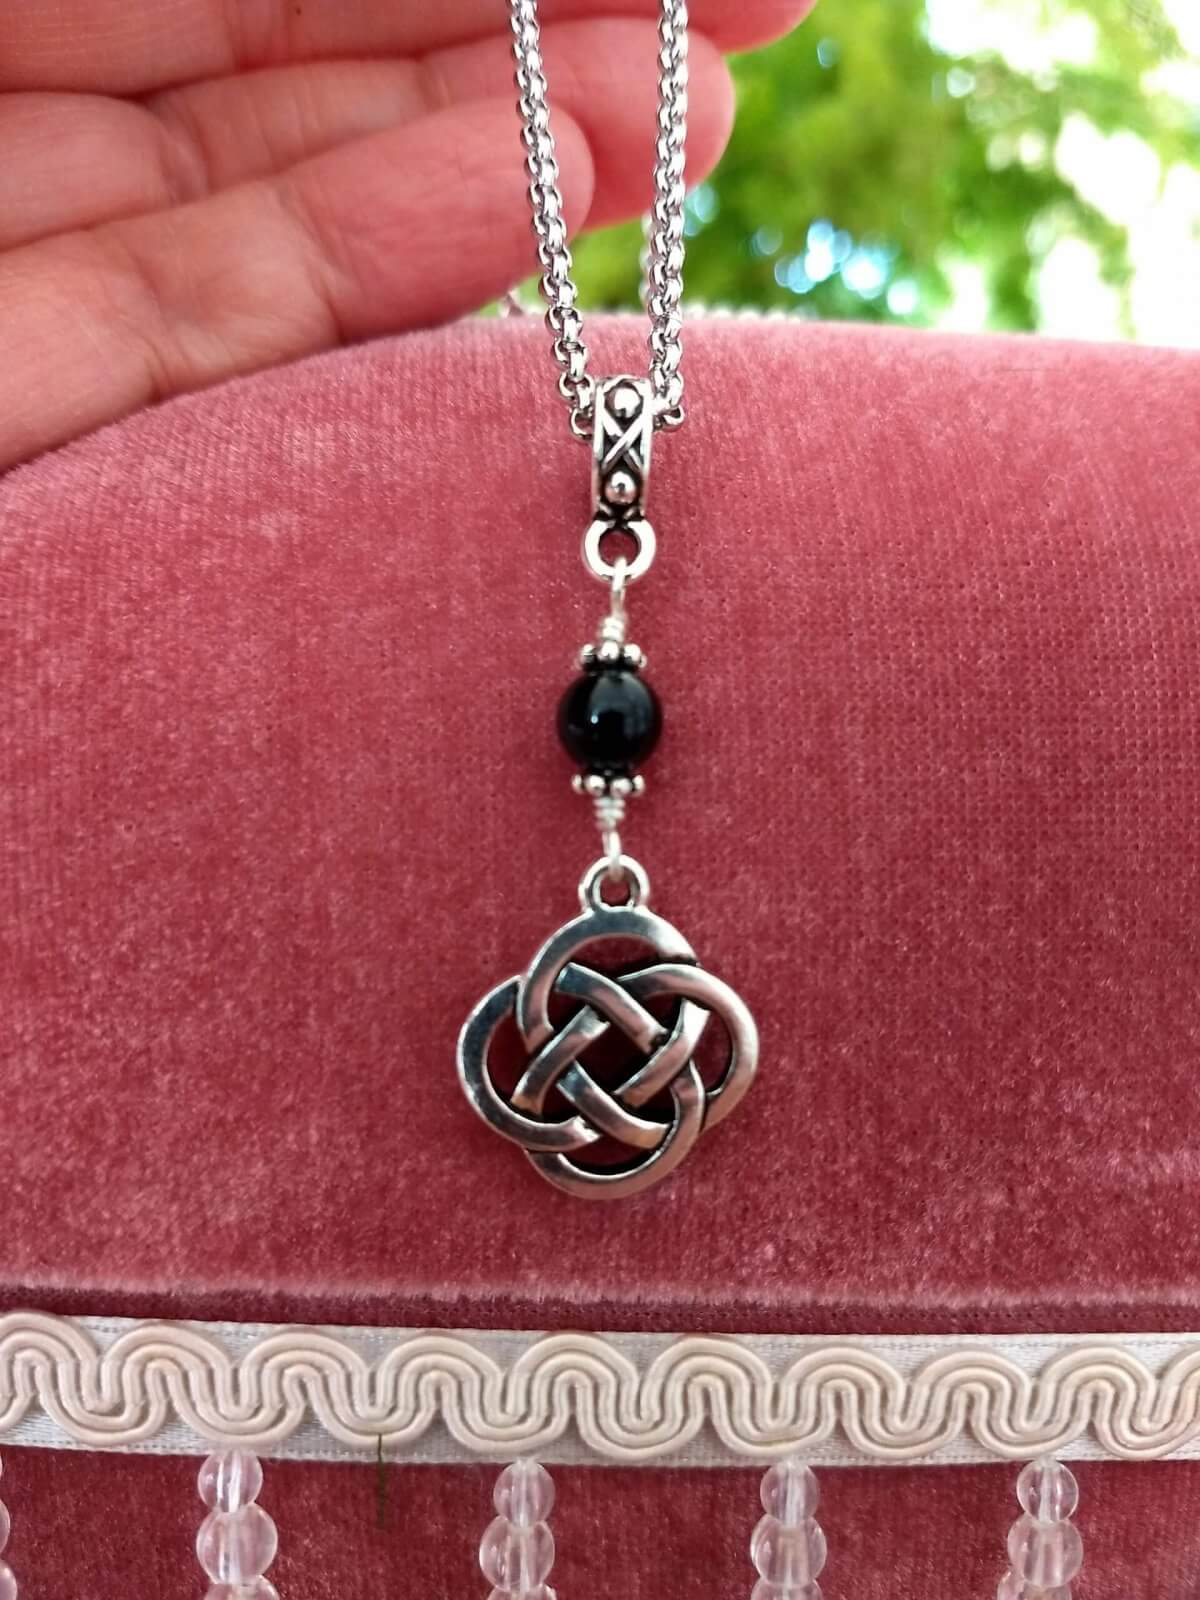 https://lorirae.com/wp-content/uploads/2020/04/Celtic-pretzel-knot-with-onyx-accent-scaled-e1587420020368.jpg